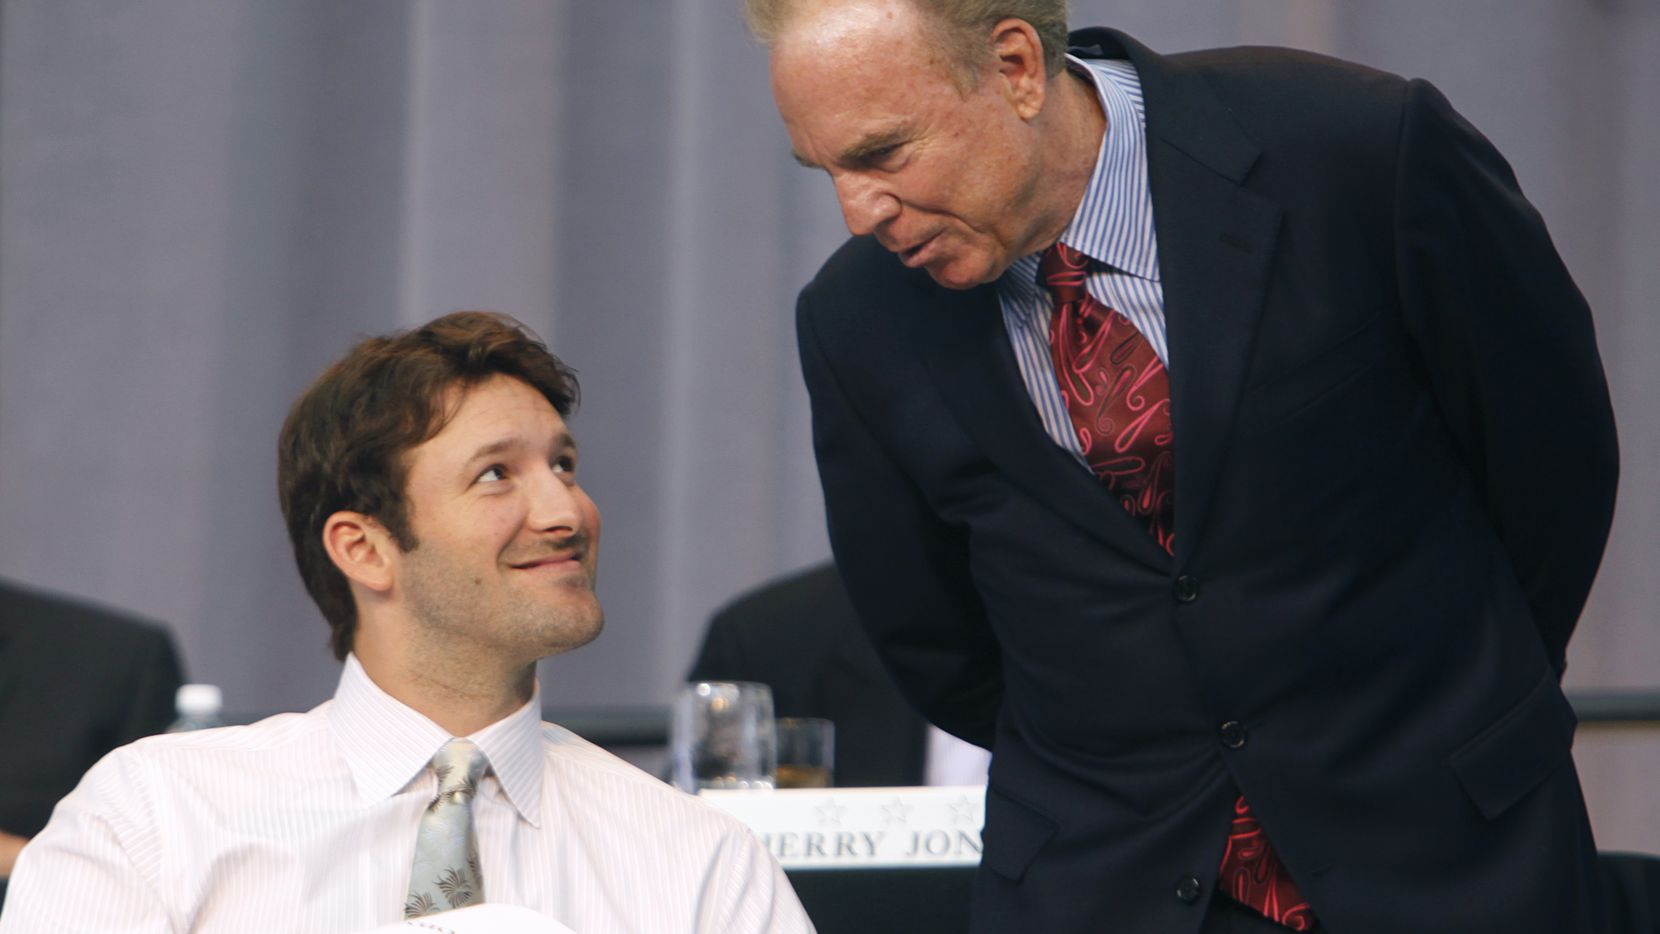 Hall of Fame Cowboys quarterback Roger Staubach (right) and current quarterback Tony Romo visit onstage during the Dallas Cowboys Kickoff Luncheon held at Cowboys Stadium for the first time, Wednesday, September 1, 2010.